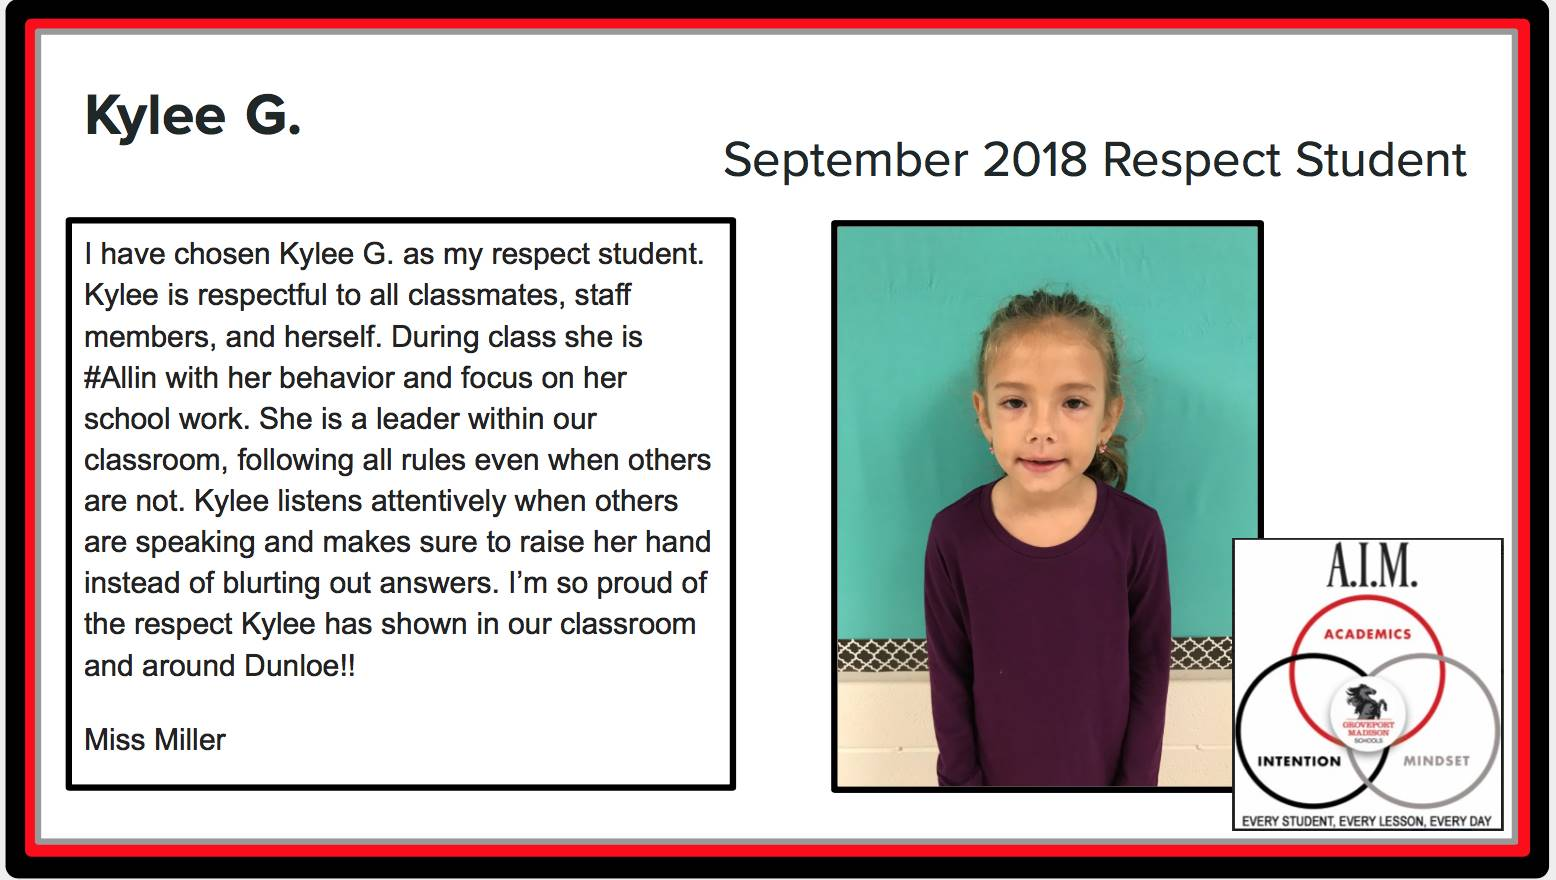 September Respect Student Kylee